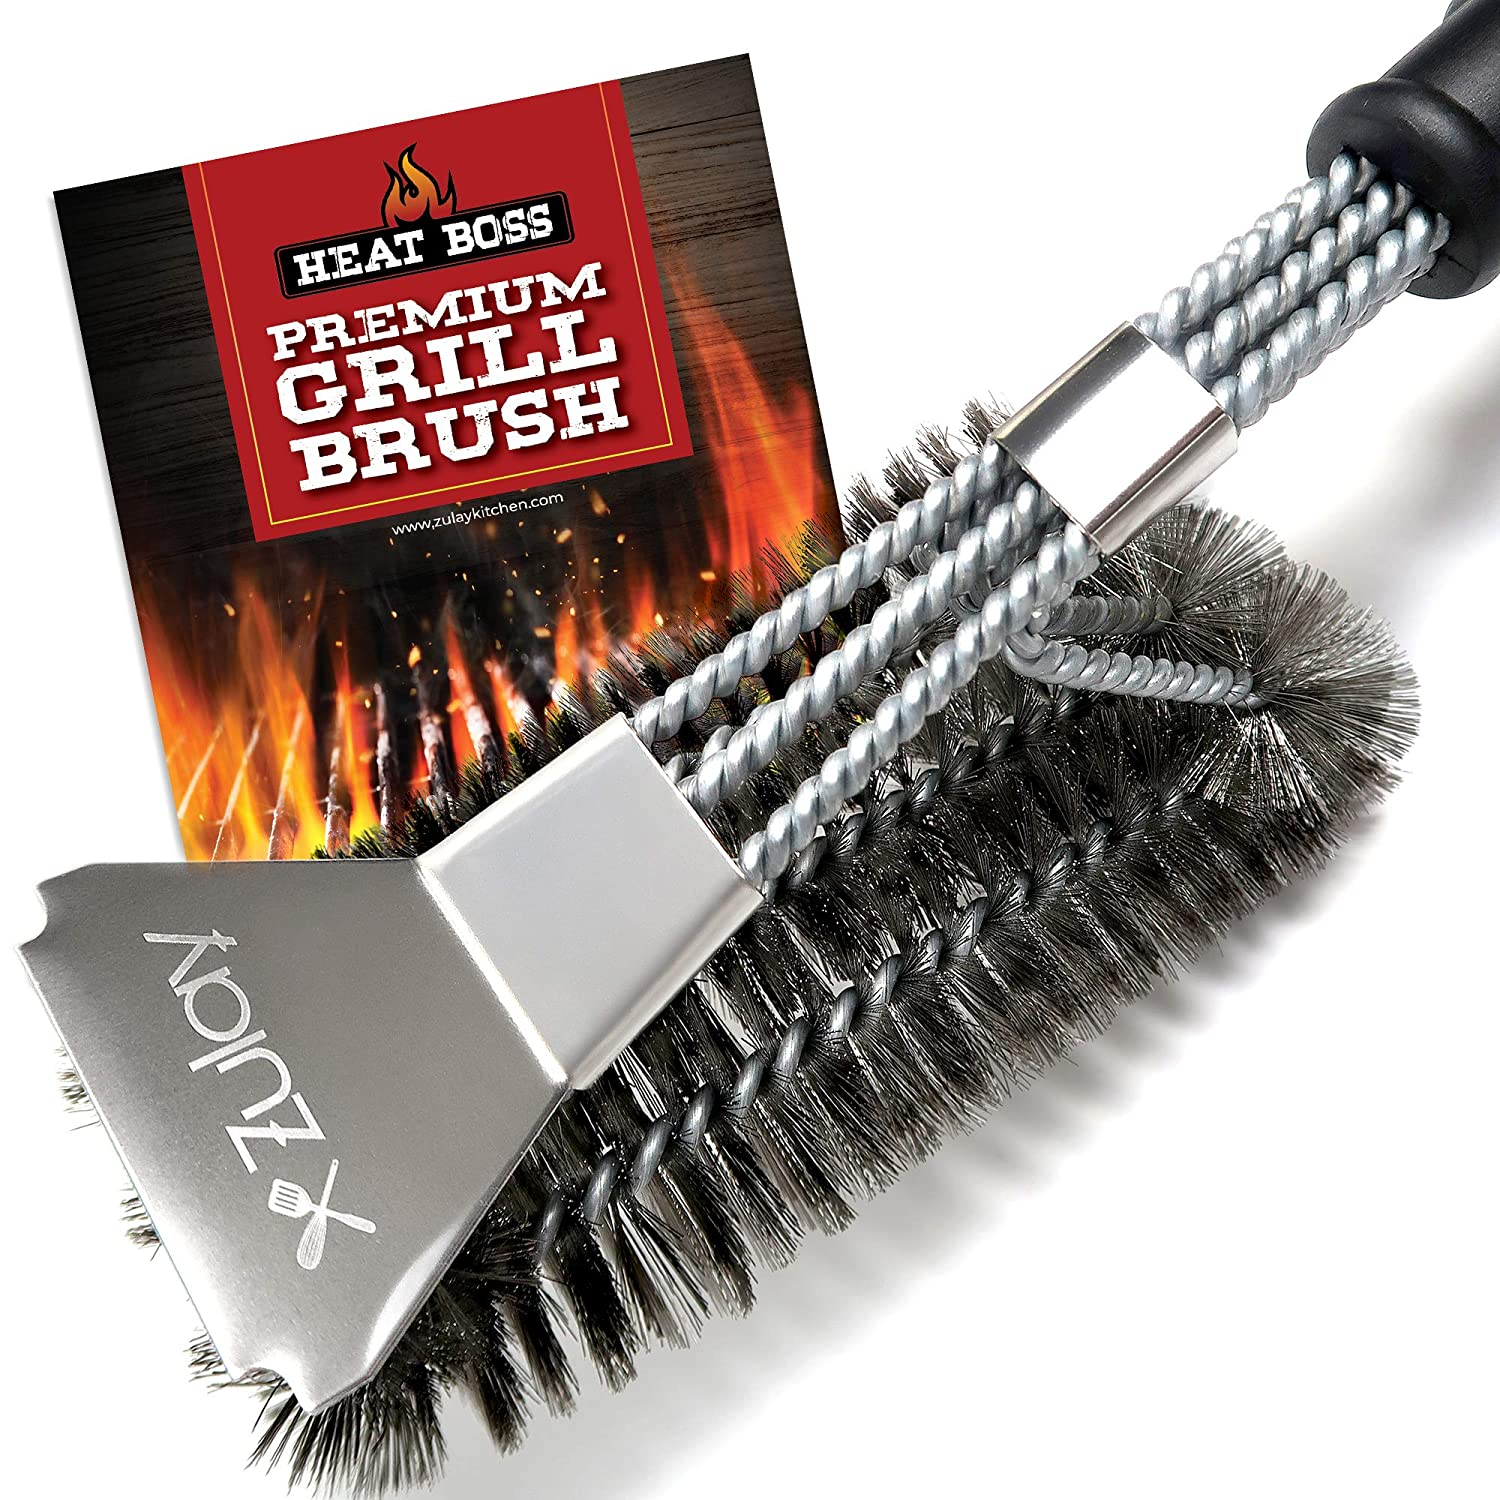 """Heat Boss Grill Brush and Grill Scraper, 3 Rows of Reinforced Stainless Steel Bristles, Best Heavy Duty Grill Cleaner Safe for All Grill Types, Long 18"""" BBQ Grill Brush Handle - by Zulay Kitchen"""